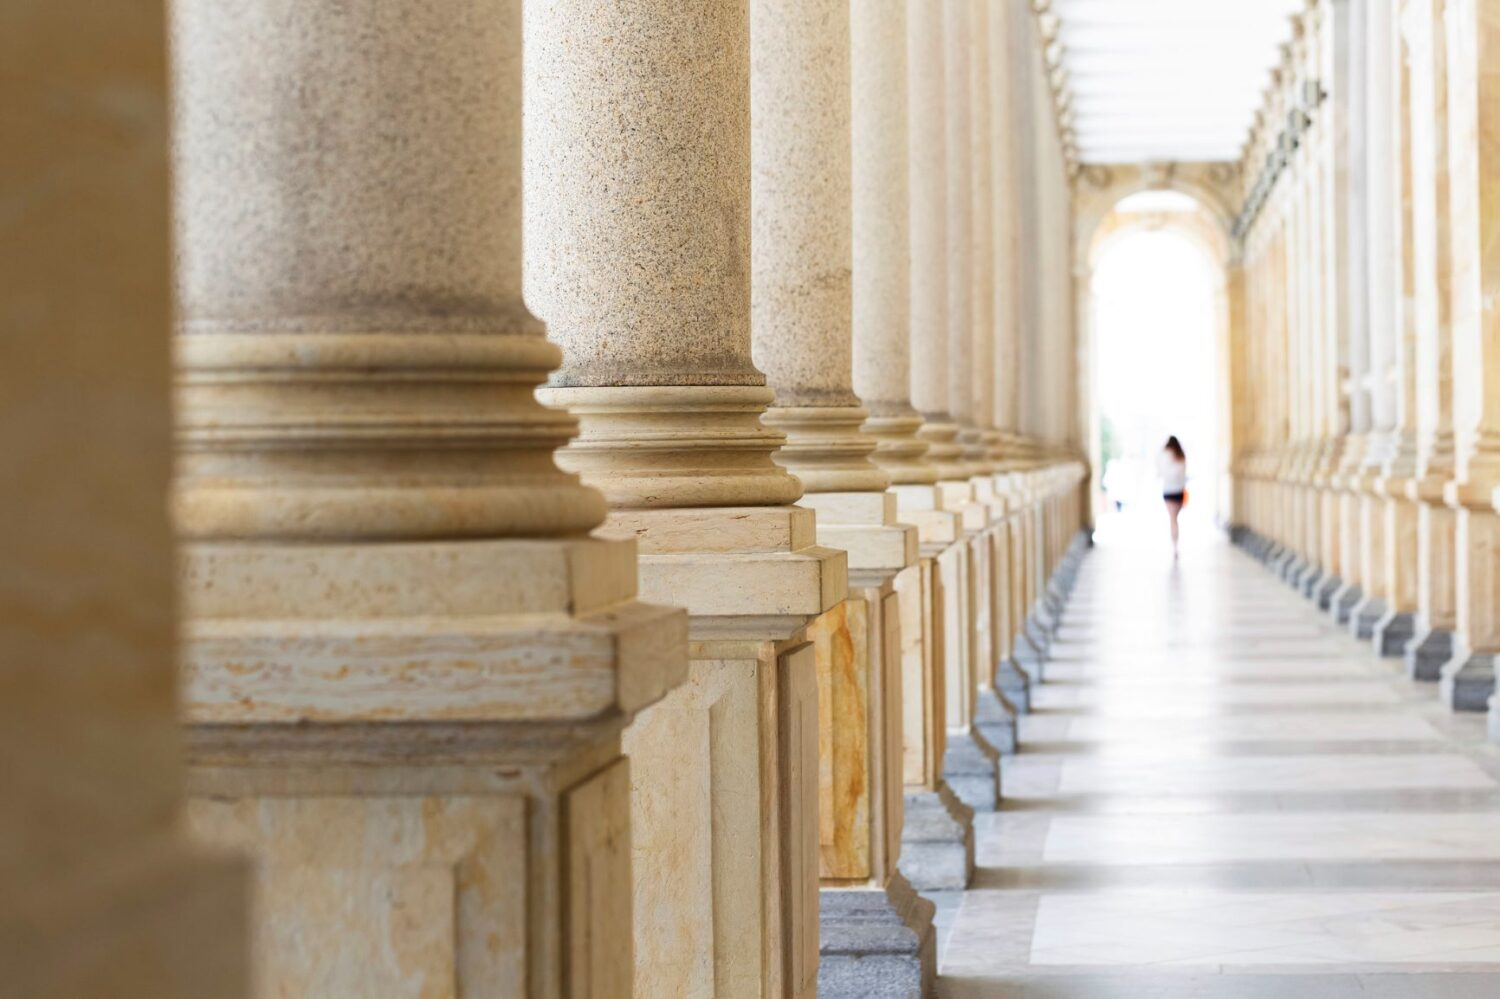 Colonnade, row of classical stone columns, background with copy spaced